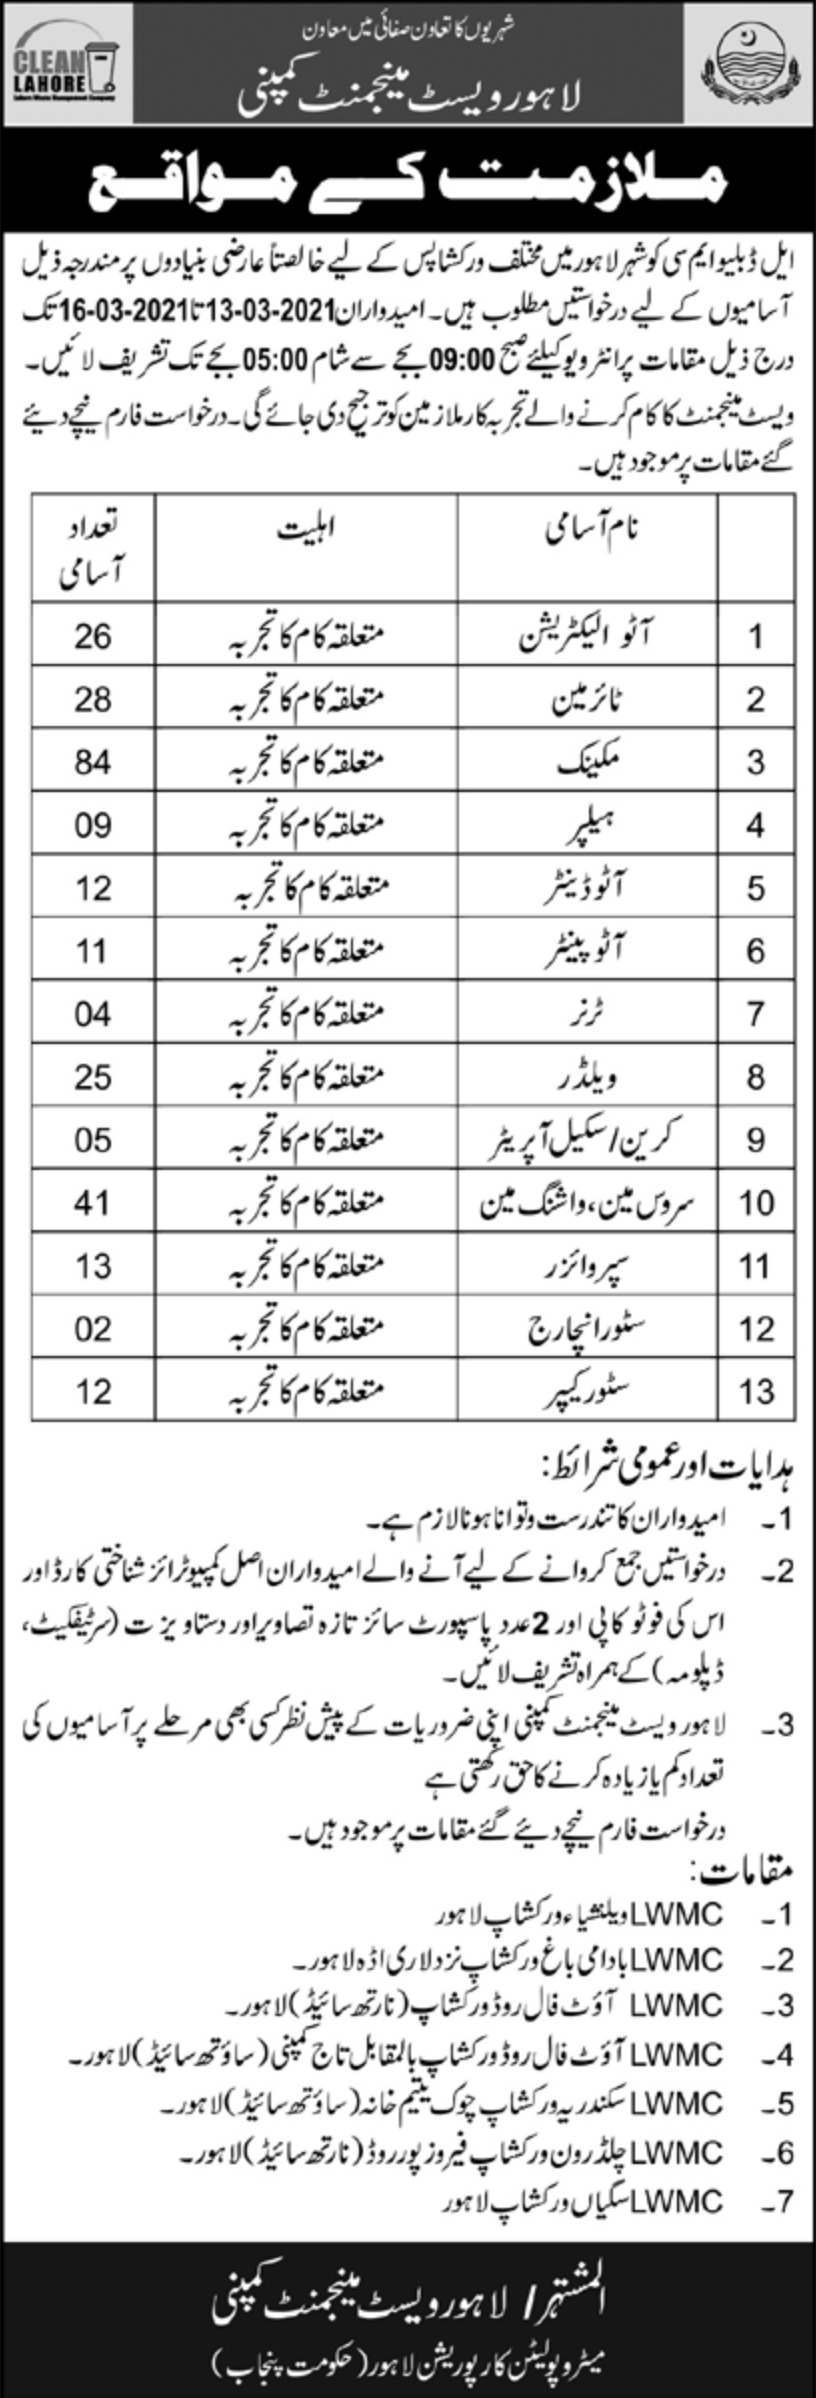 LWMC Lahore Waste Management Company Jobs March 2021